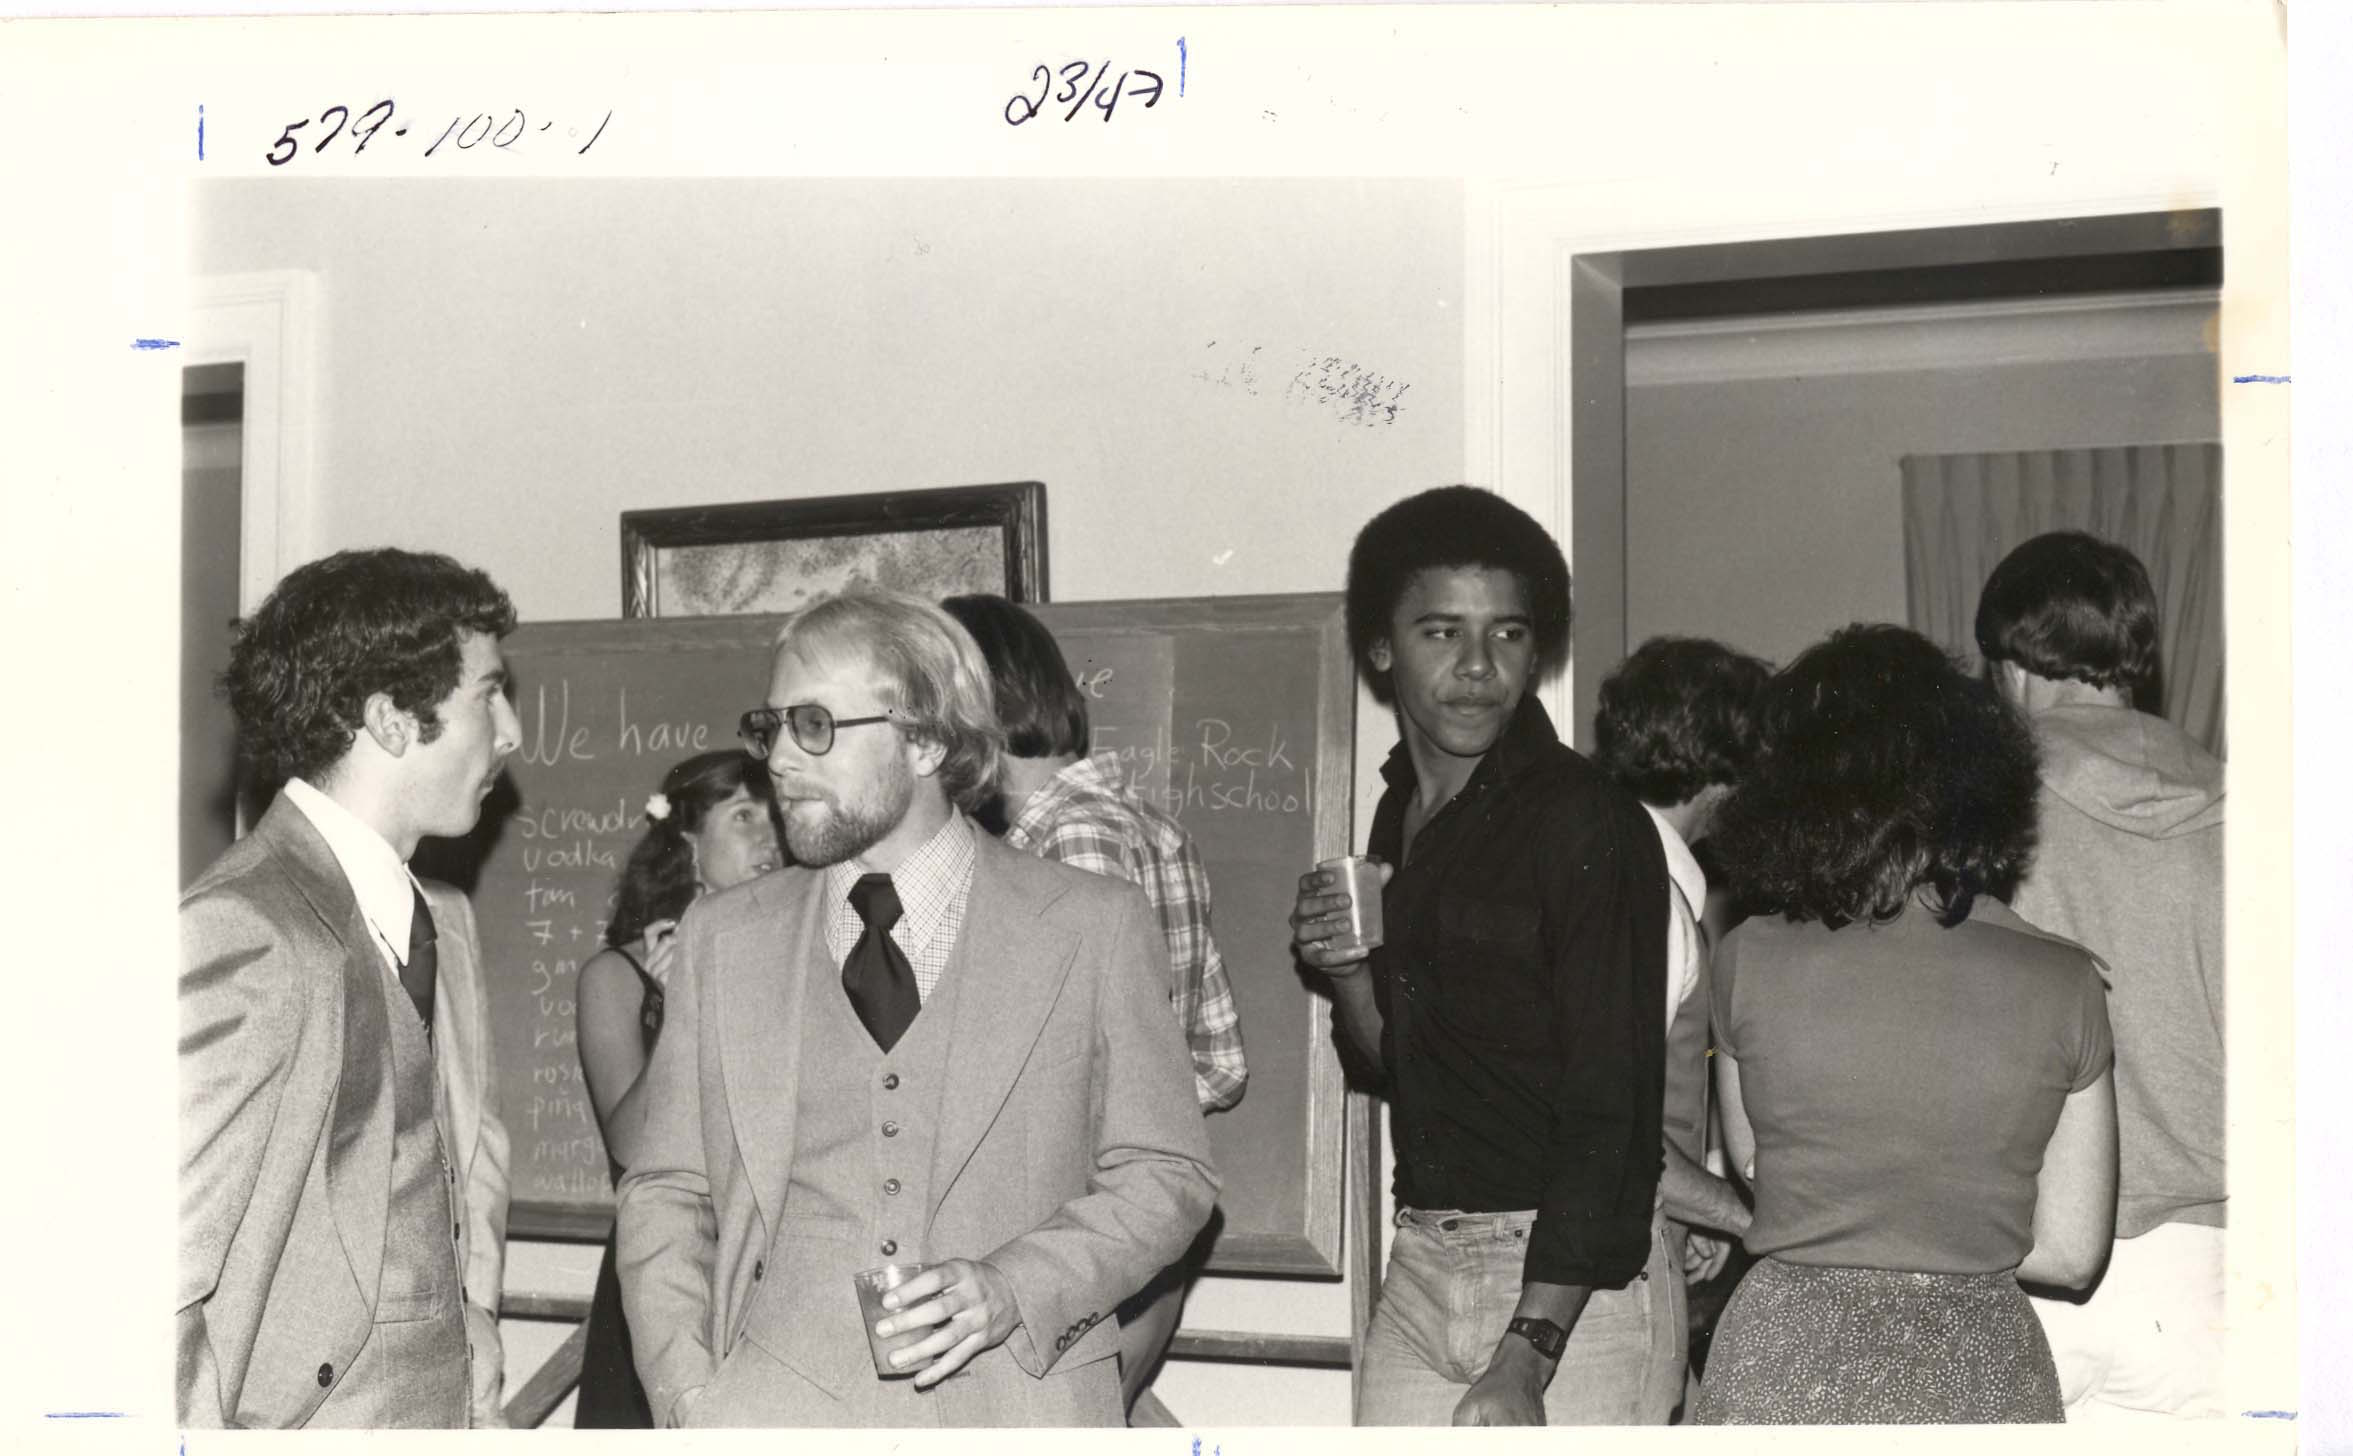 Occidental students Mike Malouf, Bill Knudson, and Barack Obama, circa 1980. Courtesy of Occidental College Archives.